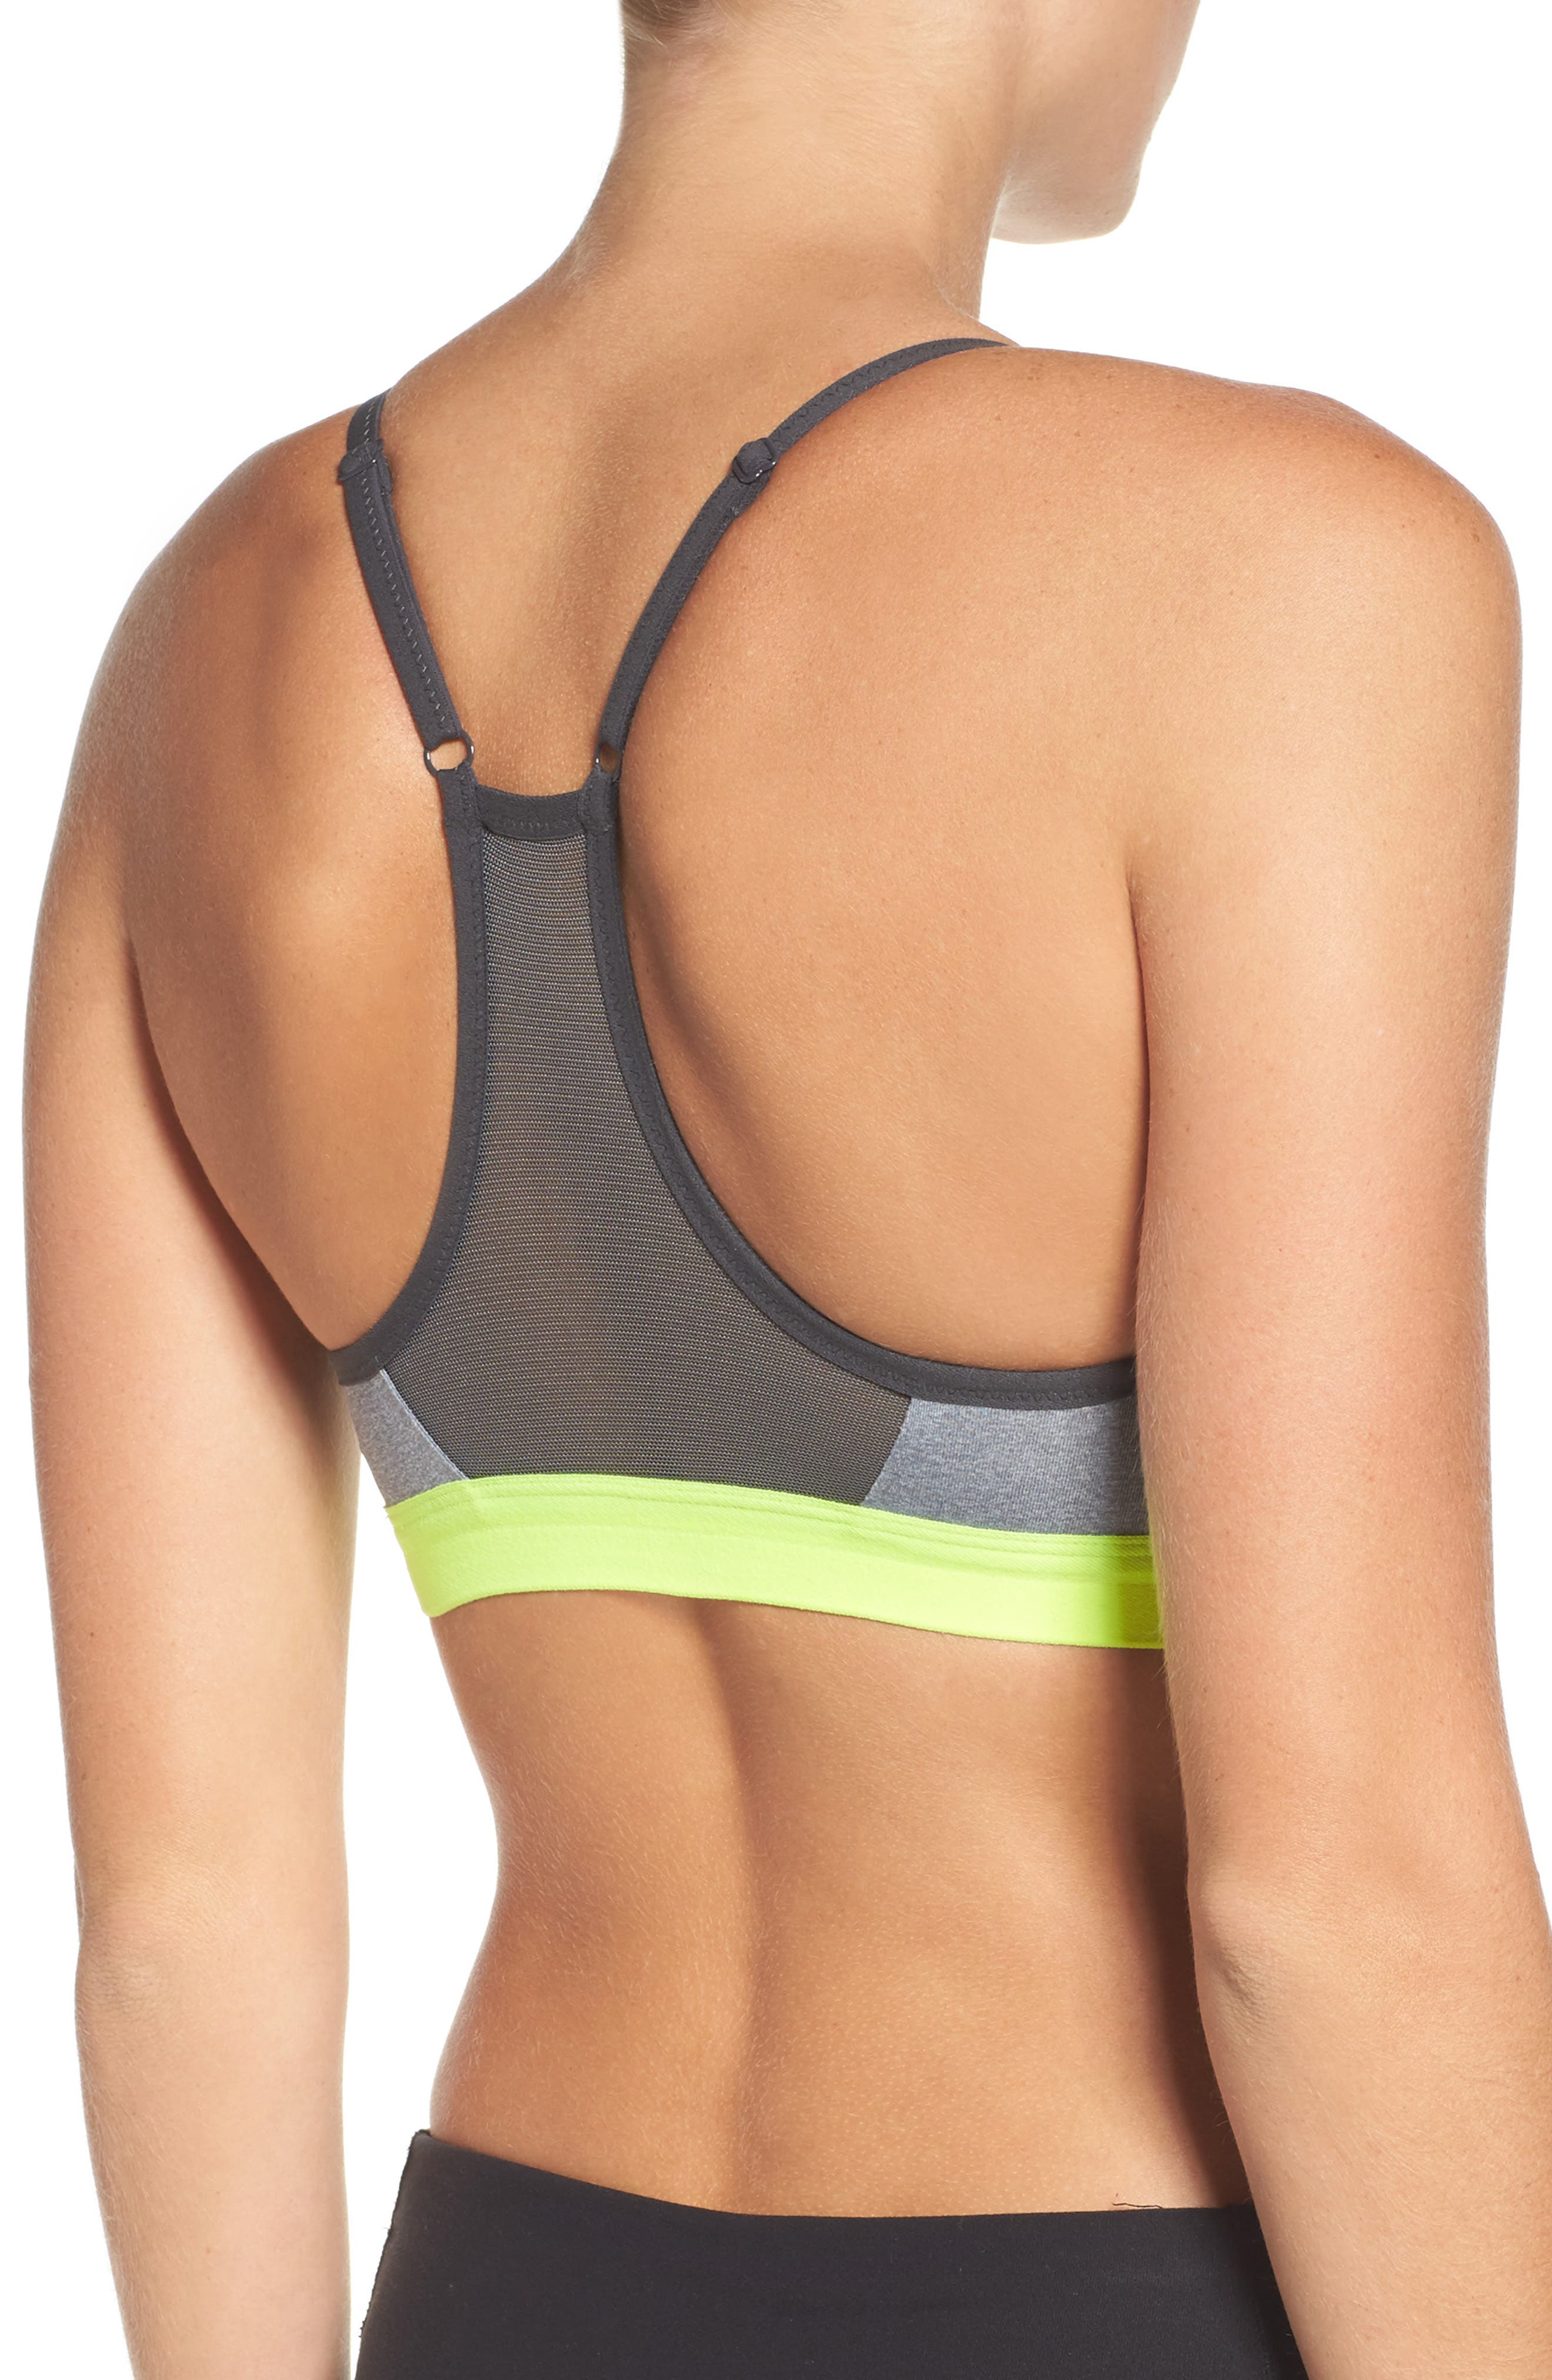 'Pro Indy' Dri-FIT Sports Bra,                             Alternate thumbnail 2, color,                             064